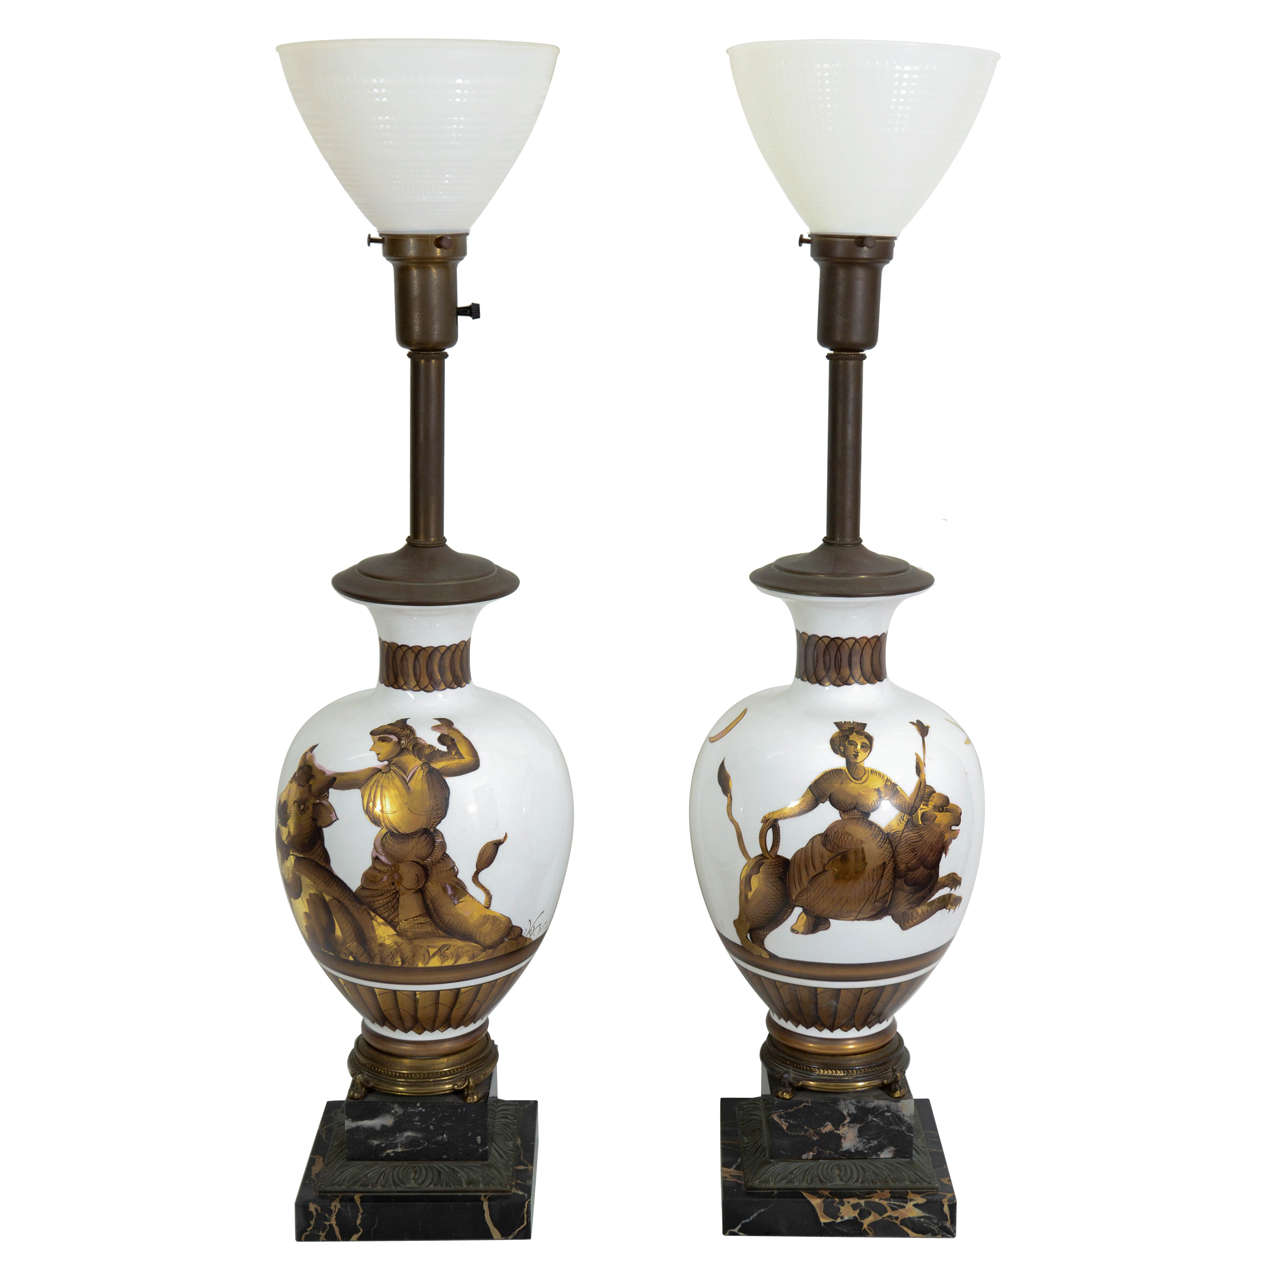 A Midcentury Pair of Tommi Parzinger Classical Motif Lamps